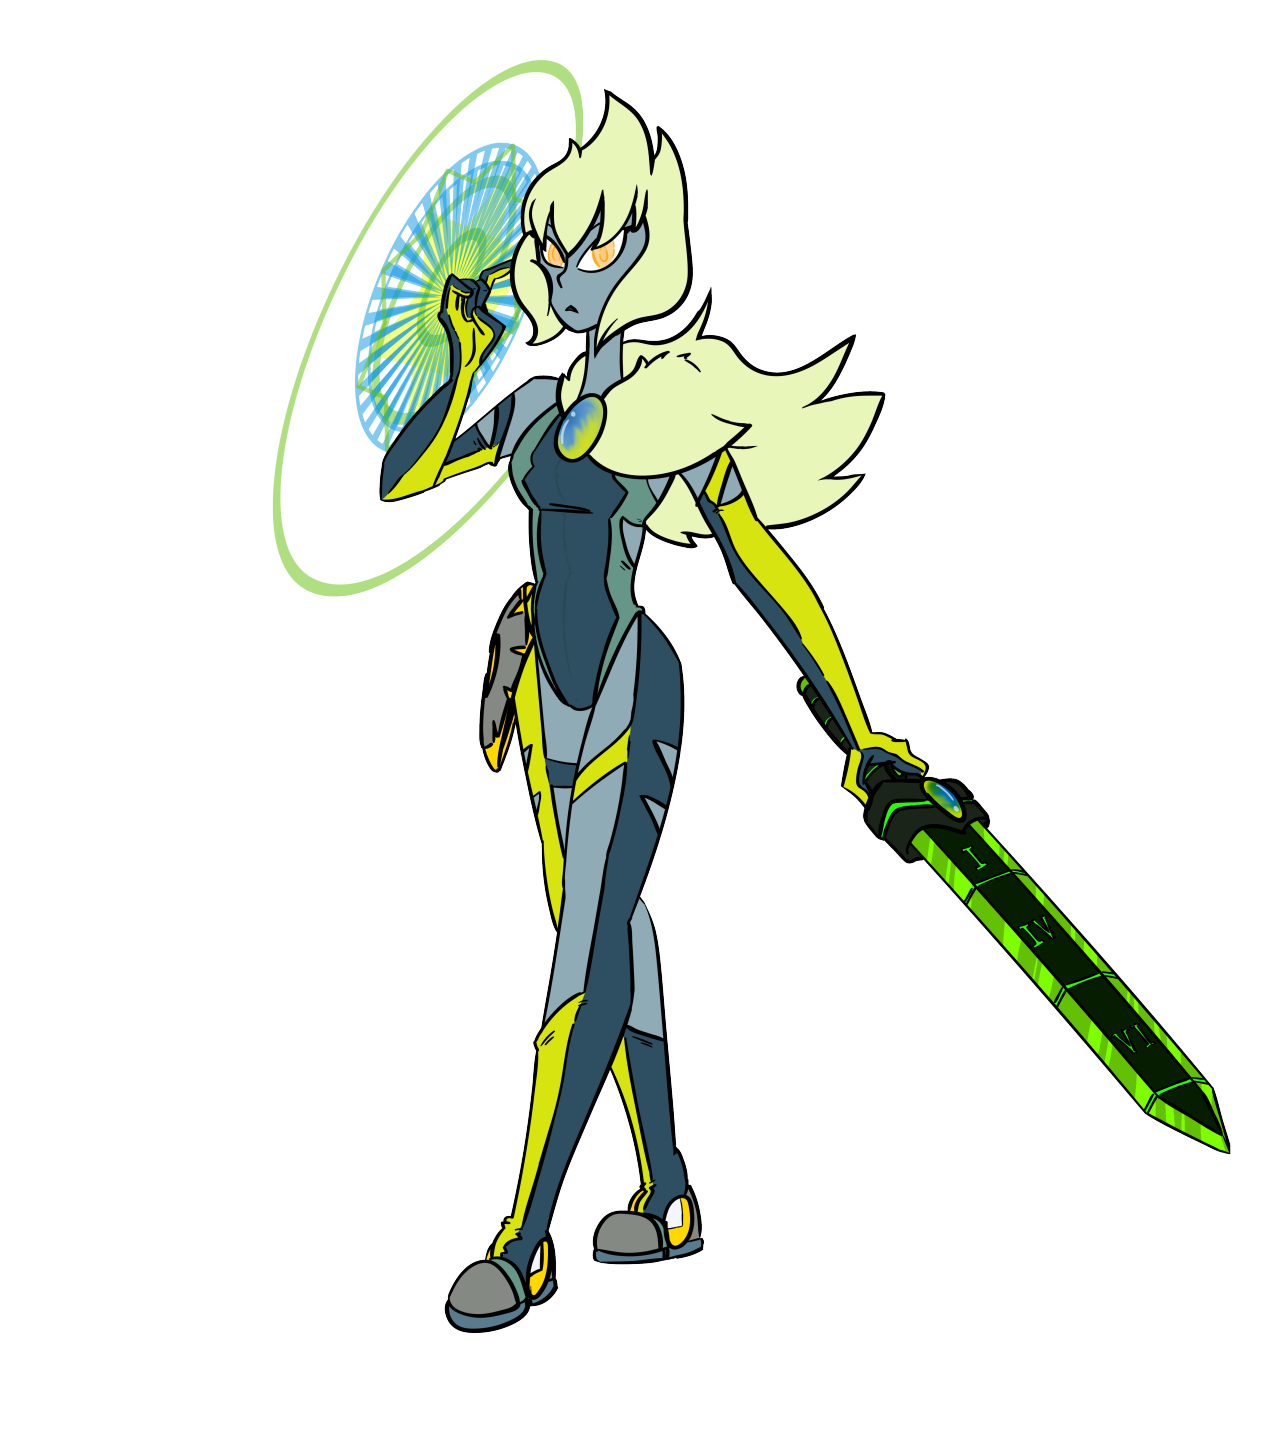 """Peridox the Time-Mender"" While not the Main-Protagonist, the gem ""Peridox"" will play a key role in the Paradox Universe SU AU Fan-Comic that i will start this summer. ""Peridox"" is ofcourse just a..."